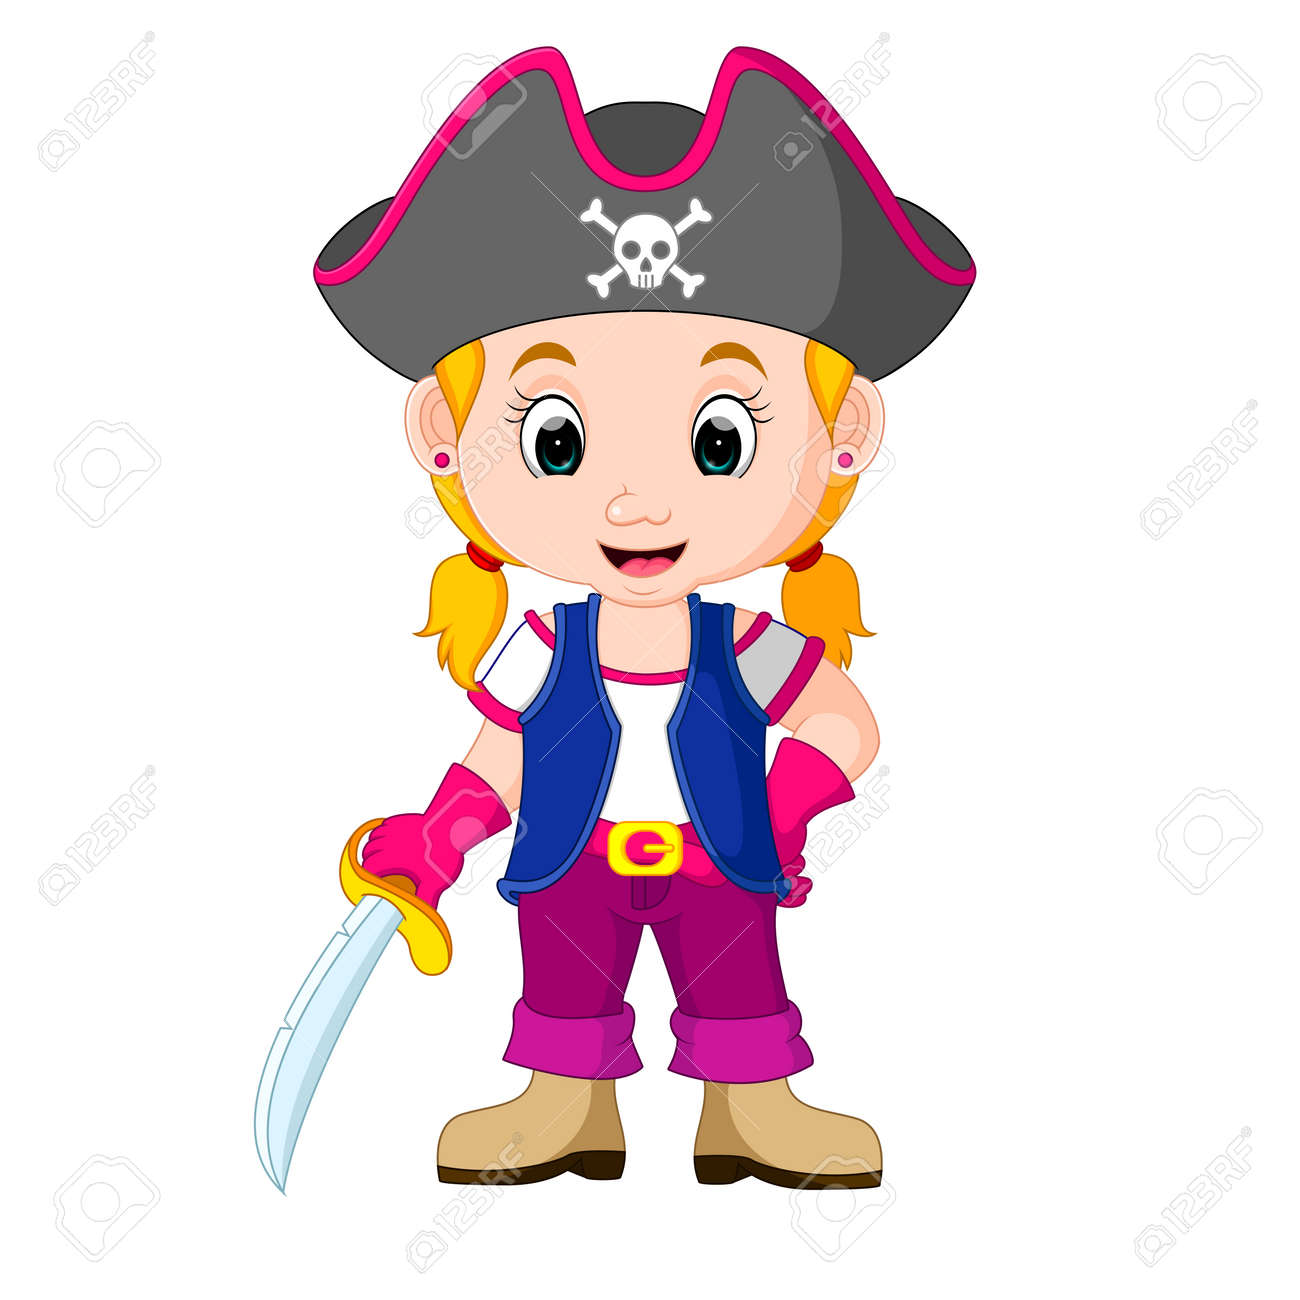 Dessin animé pirate